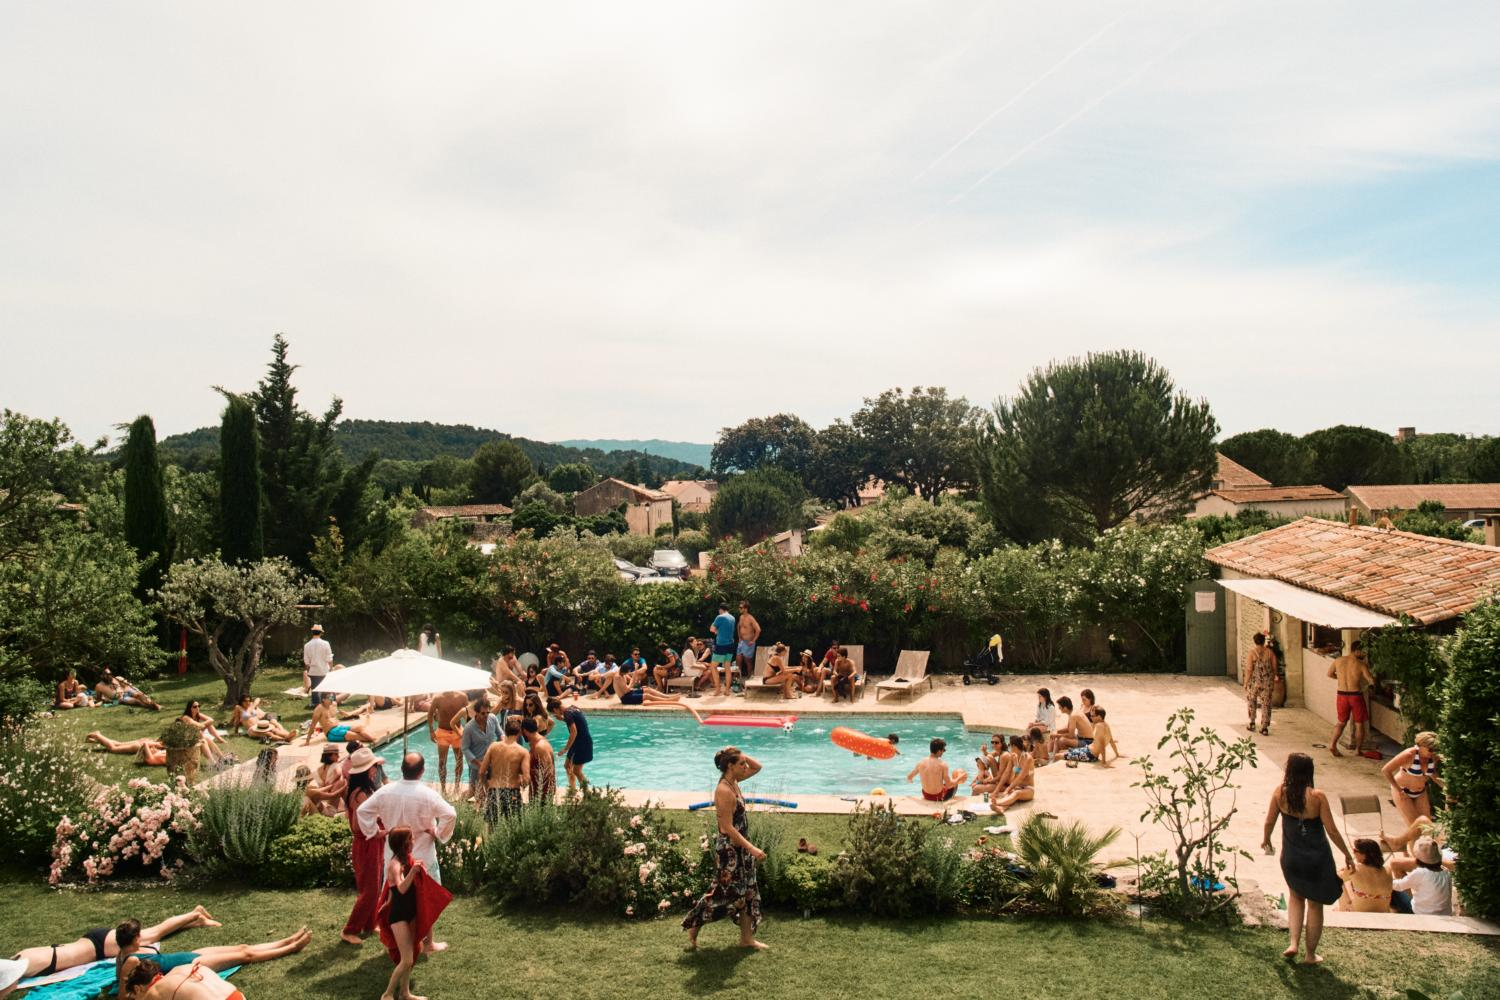 Guests relax at pool party in France